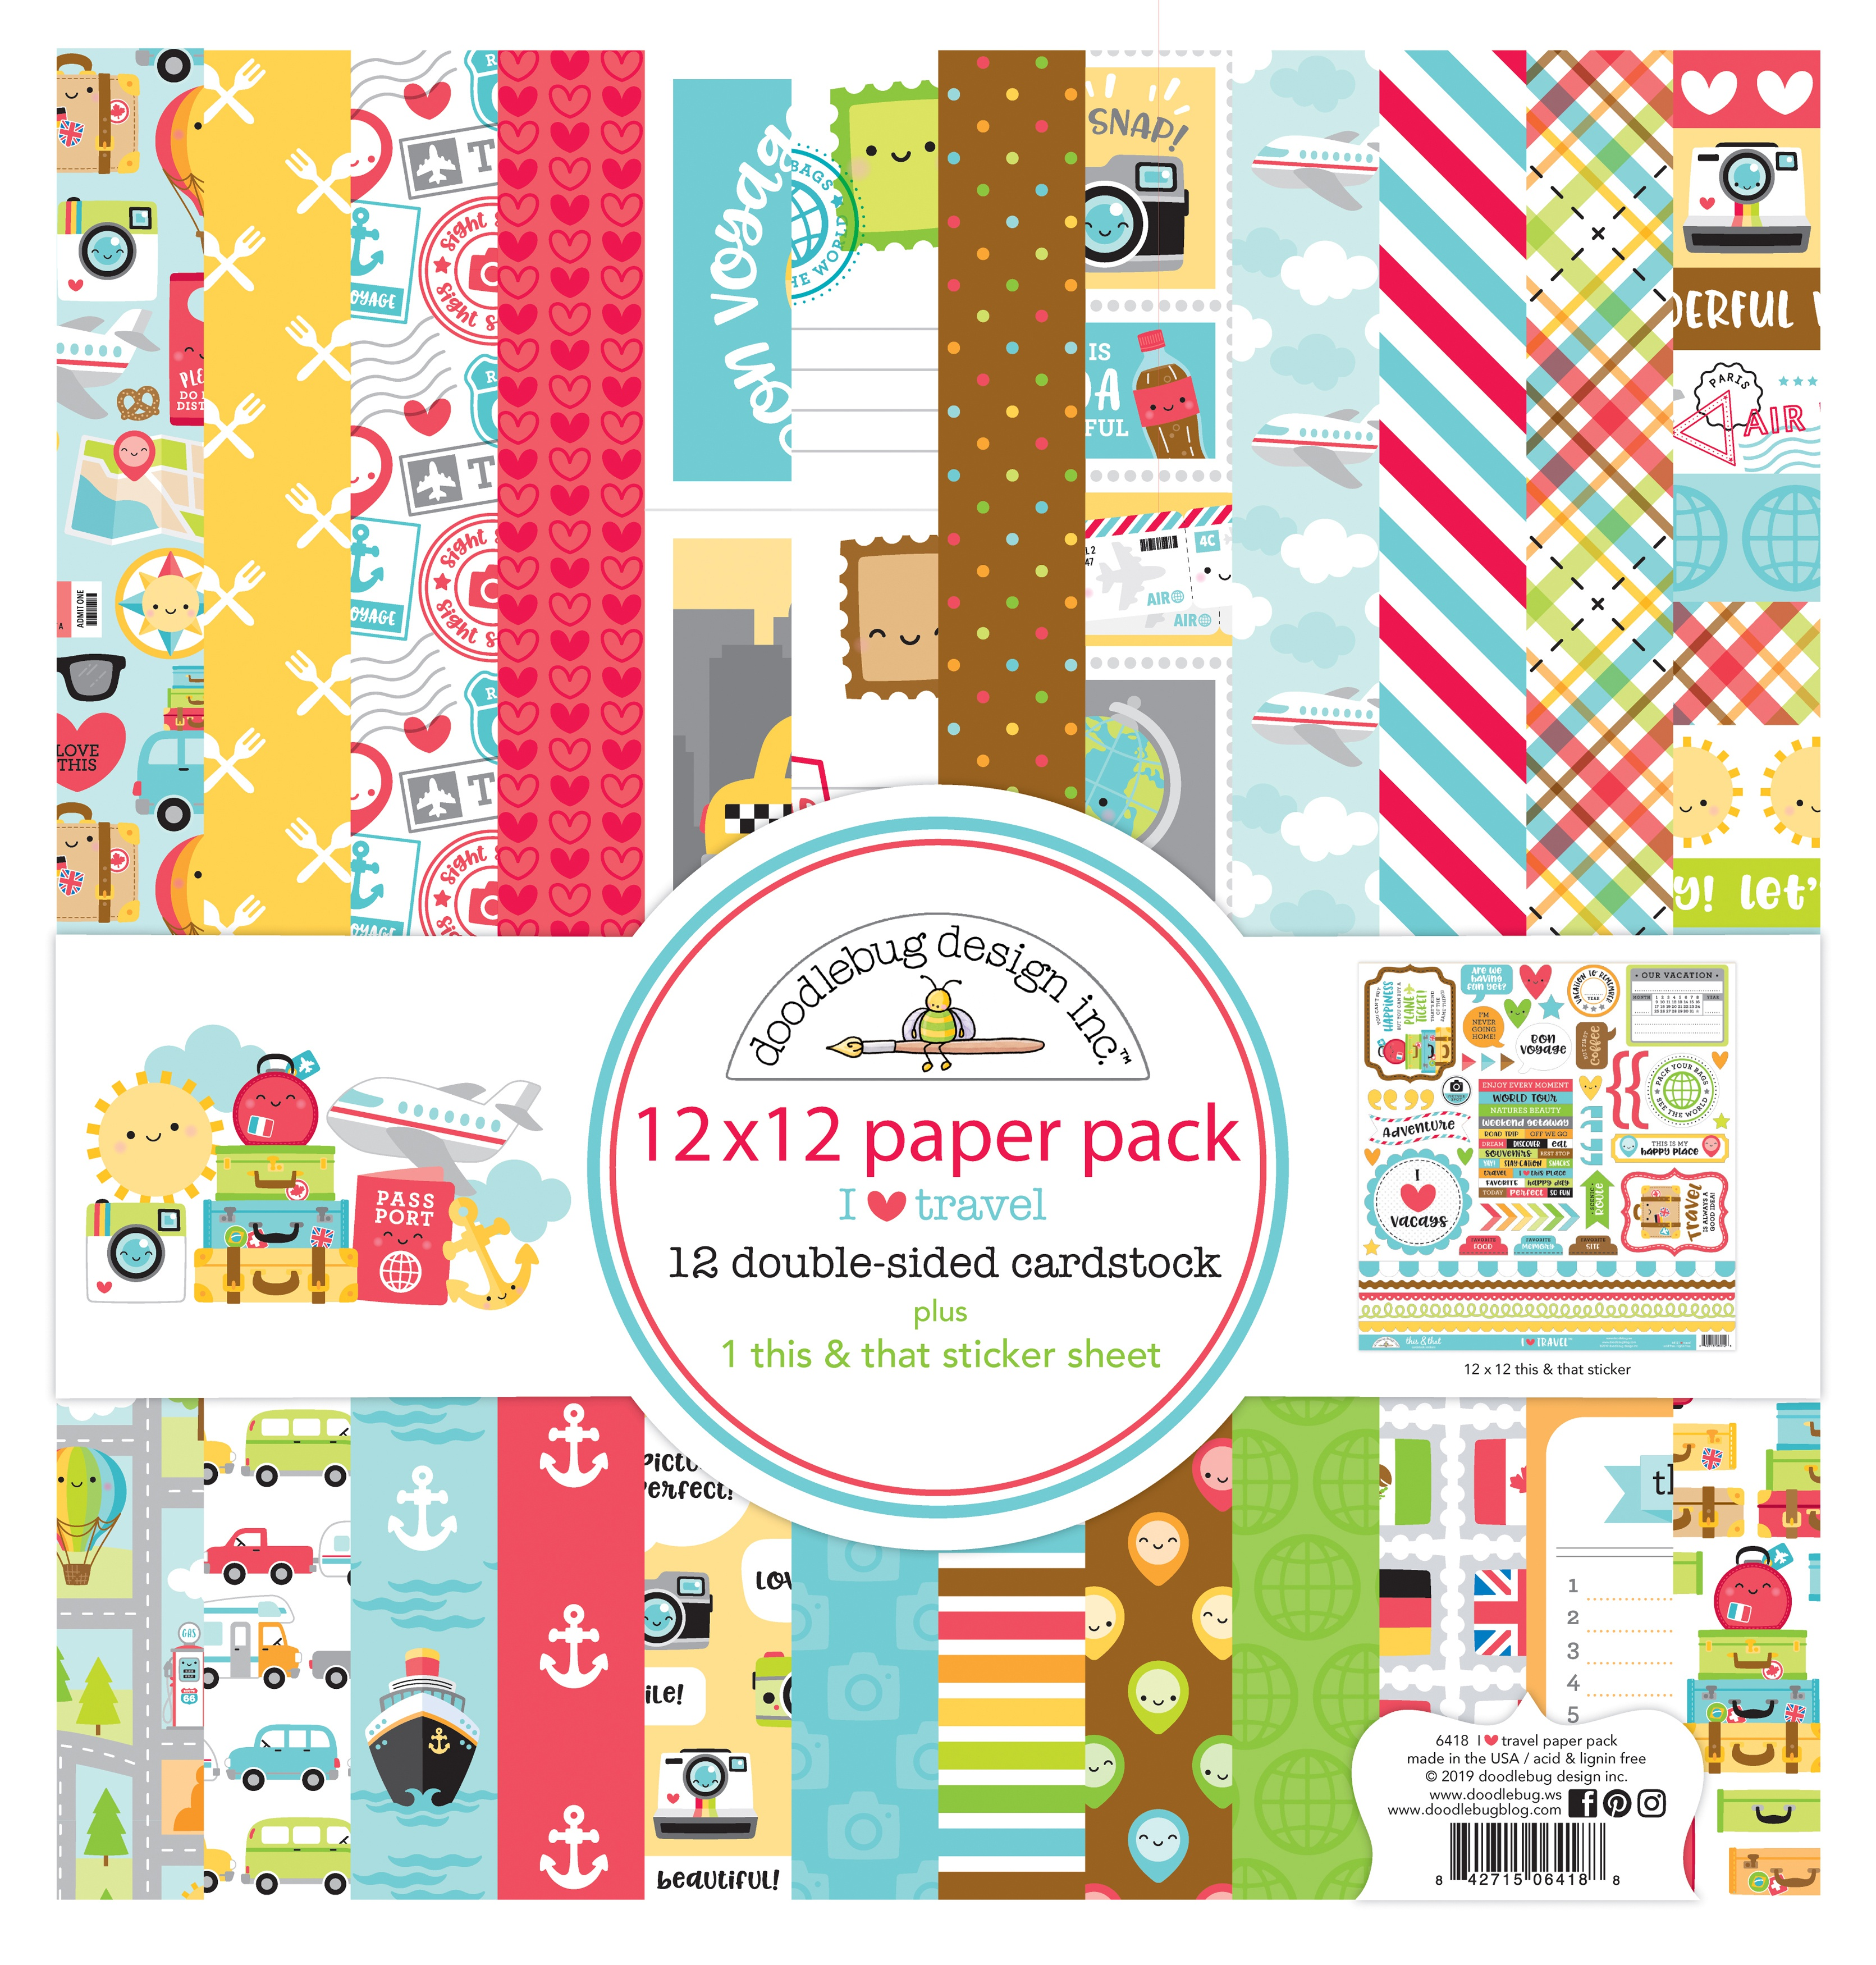 Doodlebug I Heart Travel Paper Pack 12x12 plus This & That Sticker Sheet